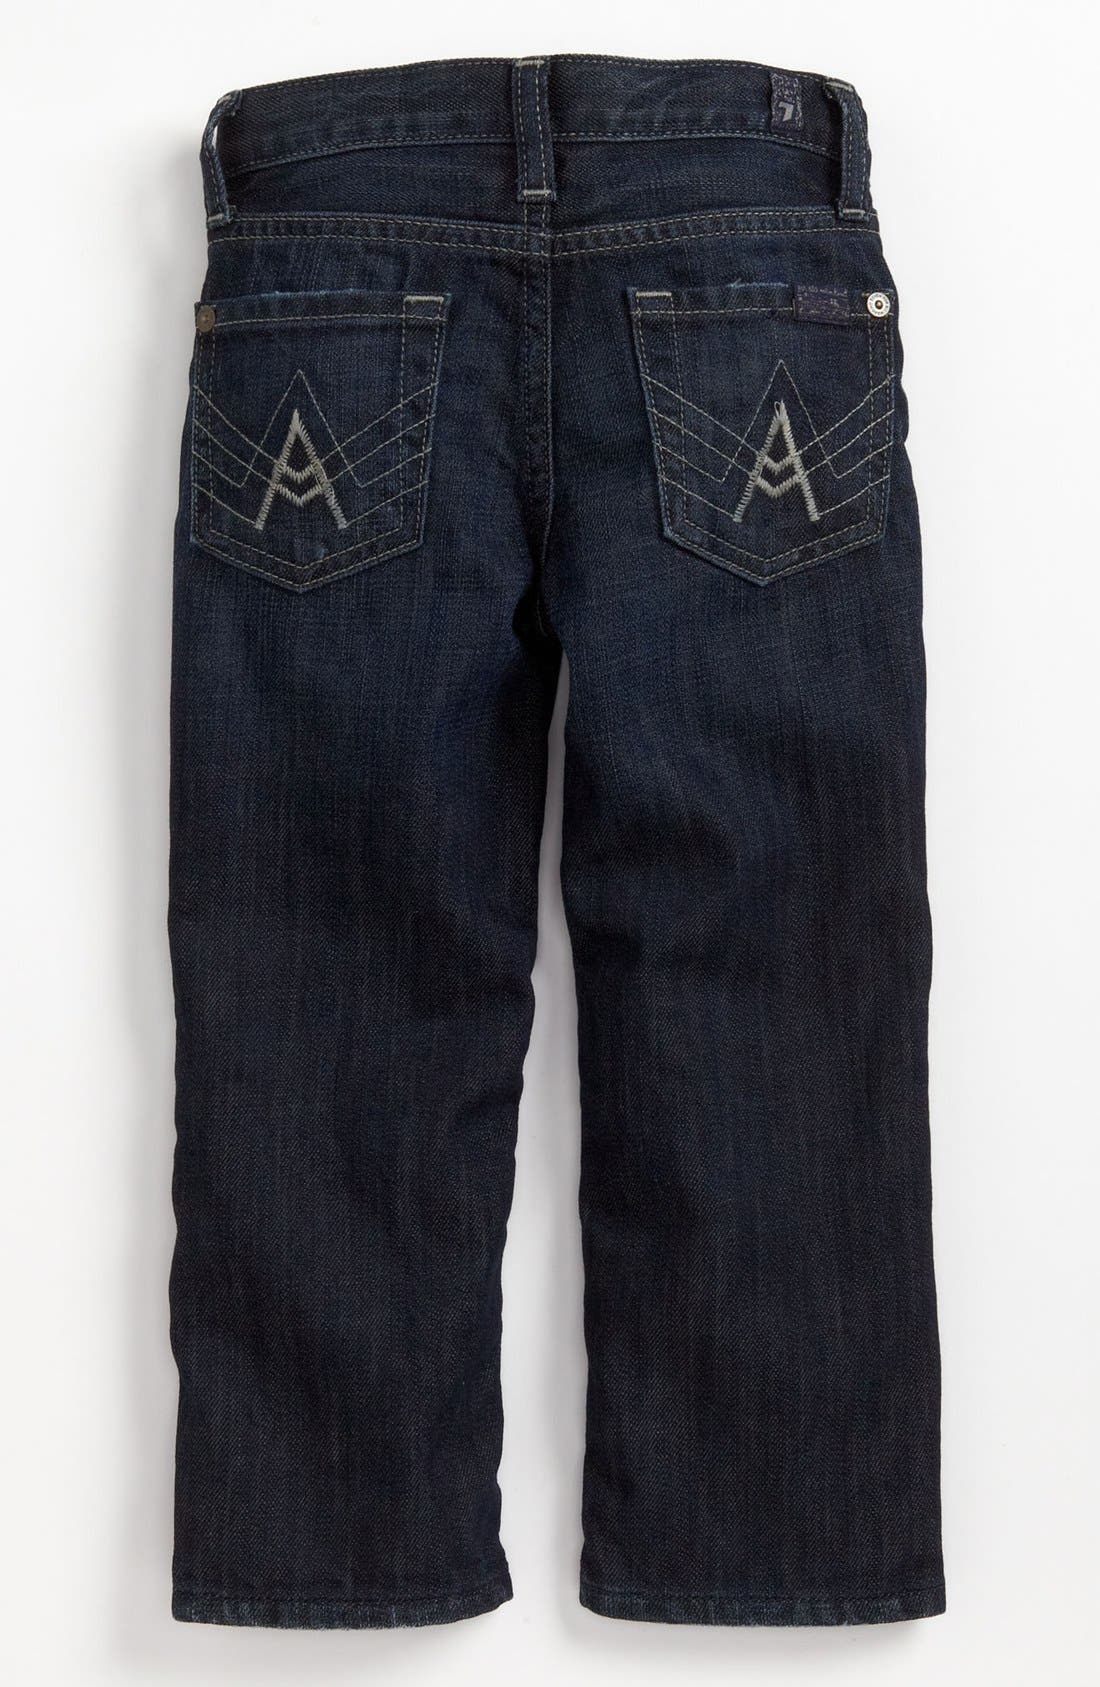 Main Image - 7 For All Mankind® 'Standard' Straight Leg Jeans (Toddler Boys) (Online Only)